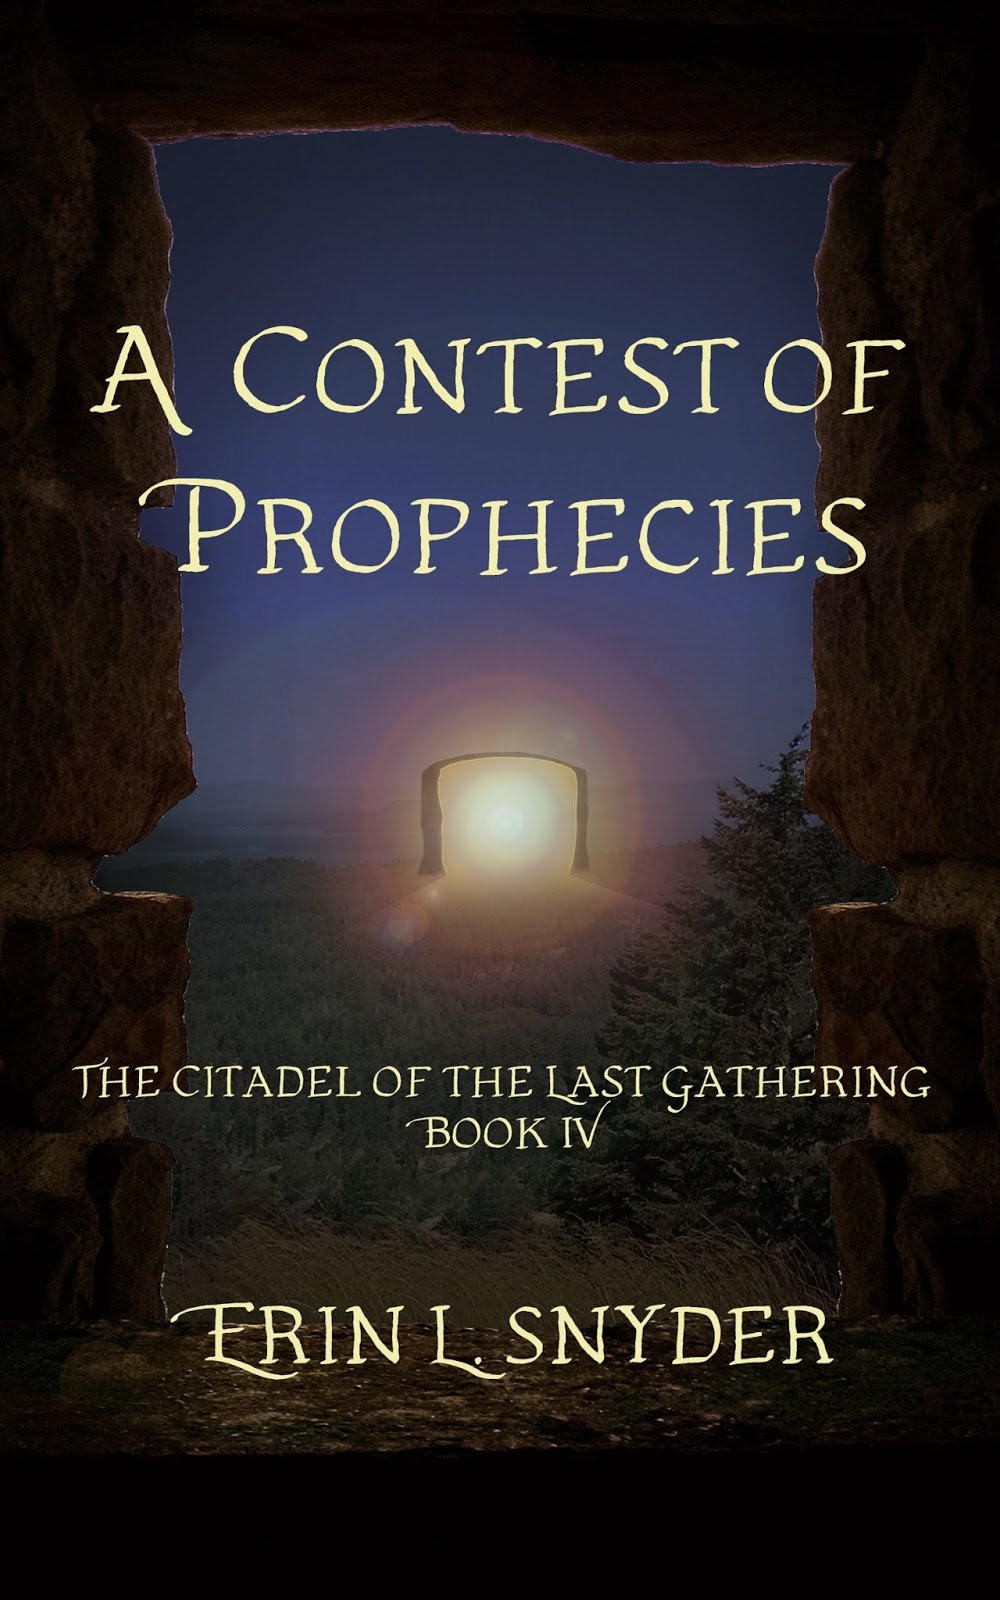 A Contest of Prophecies